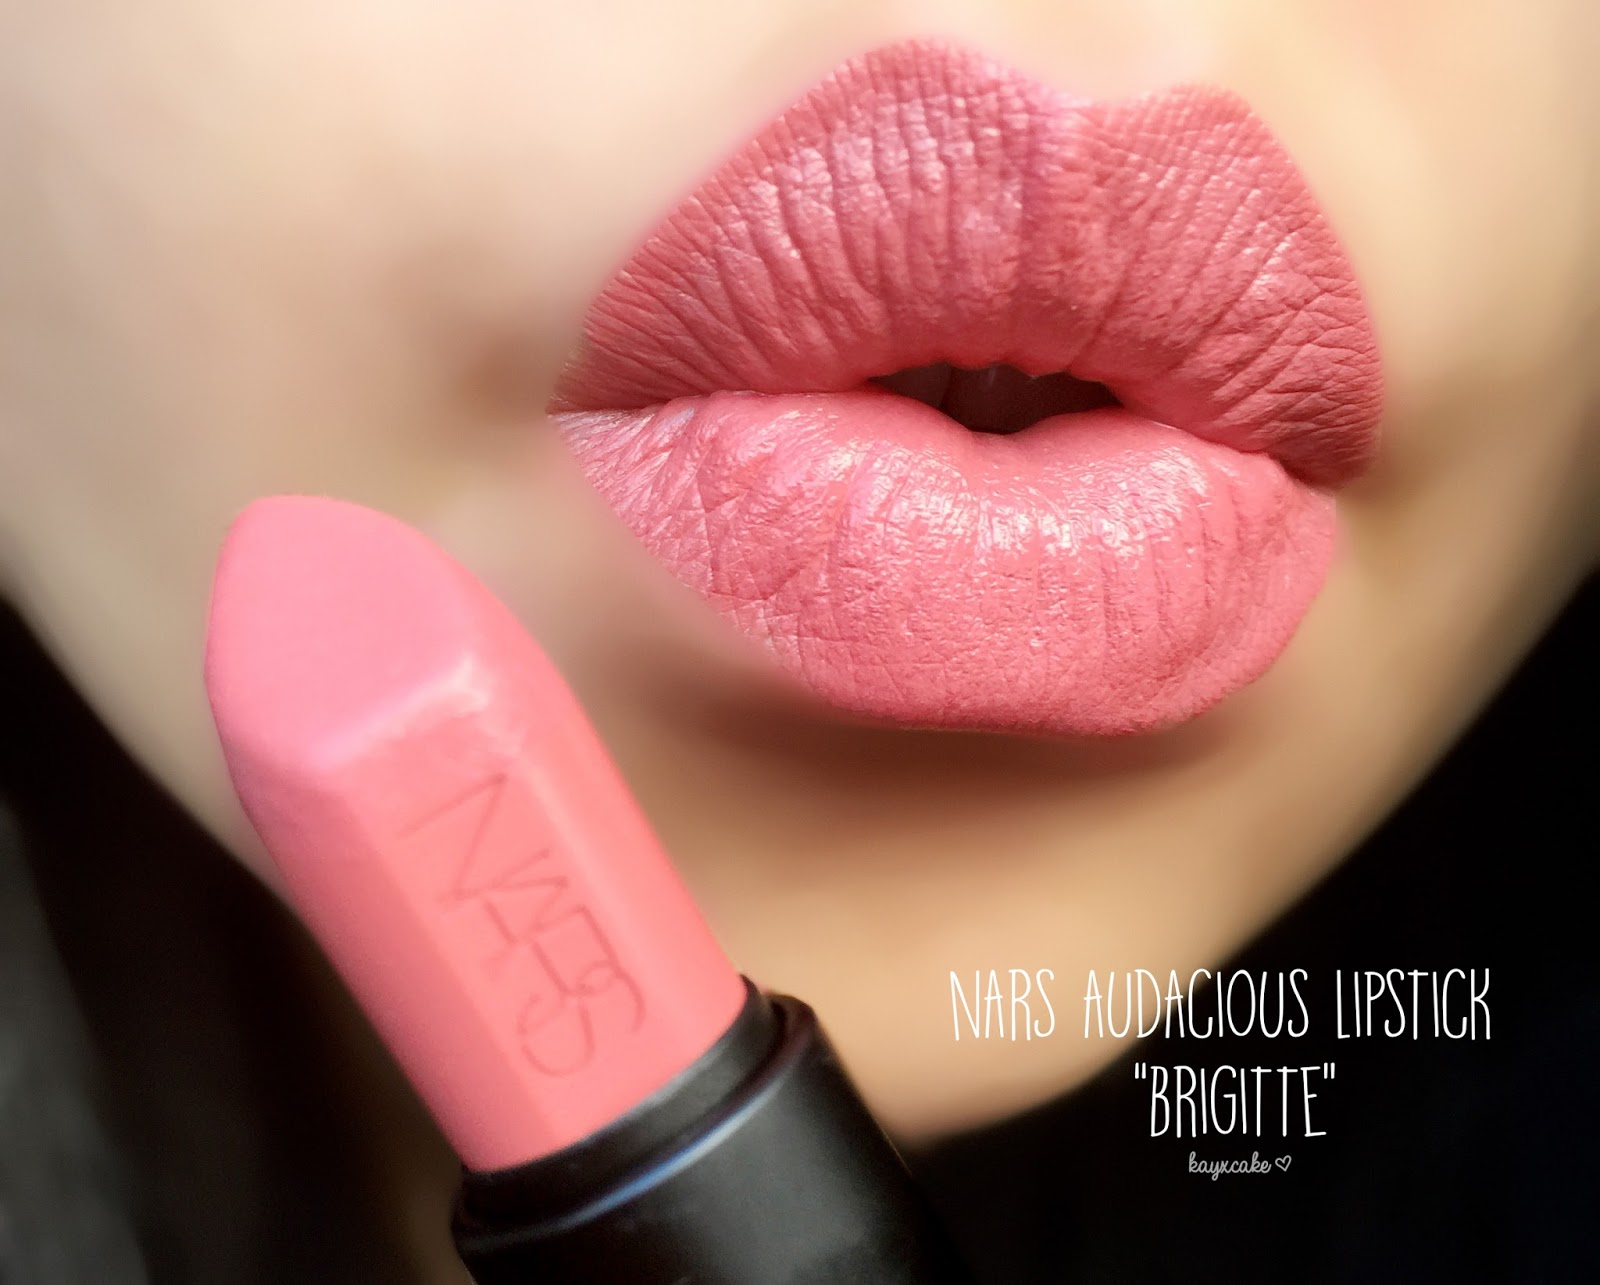 Populaire NARS Audacious Lipstick ♡ Brigitte Review + Swatches - Kay Cake  AP13